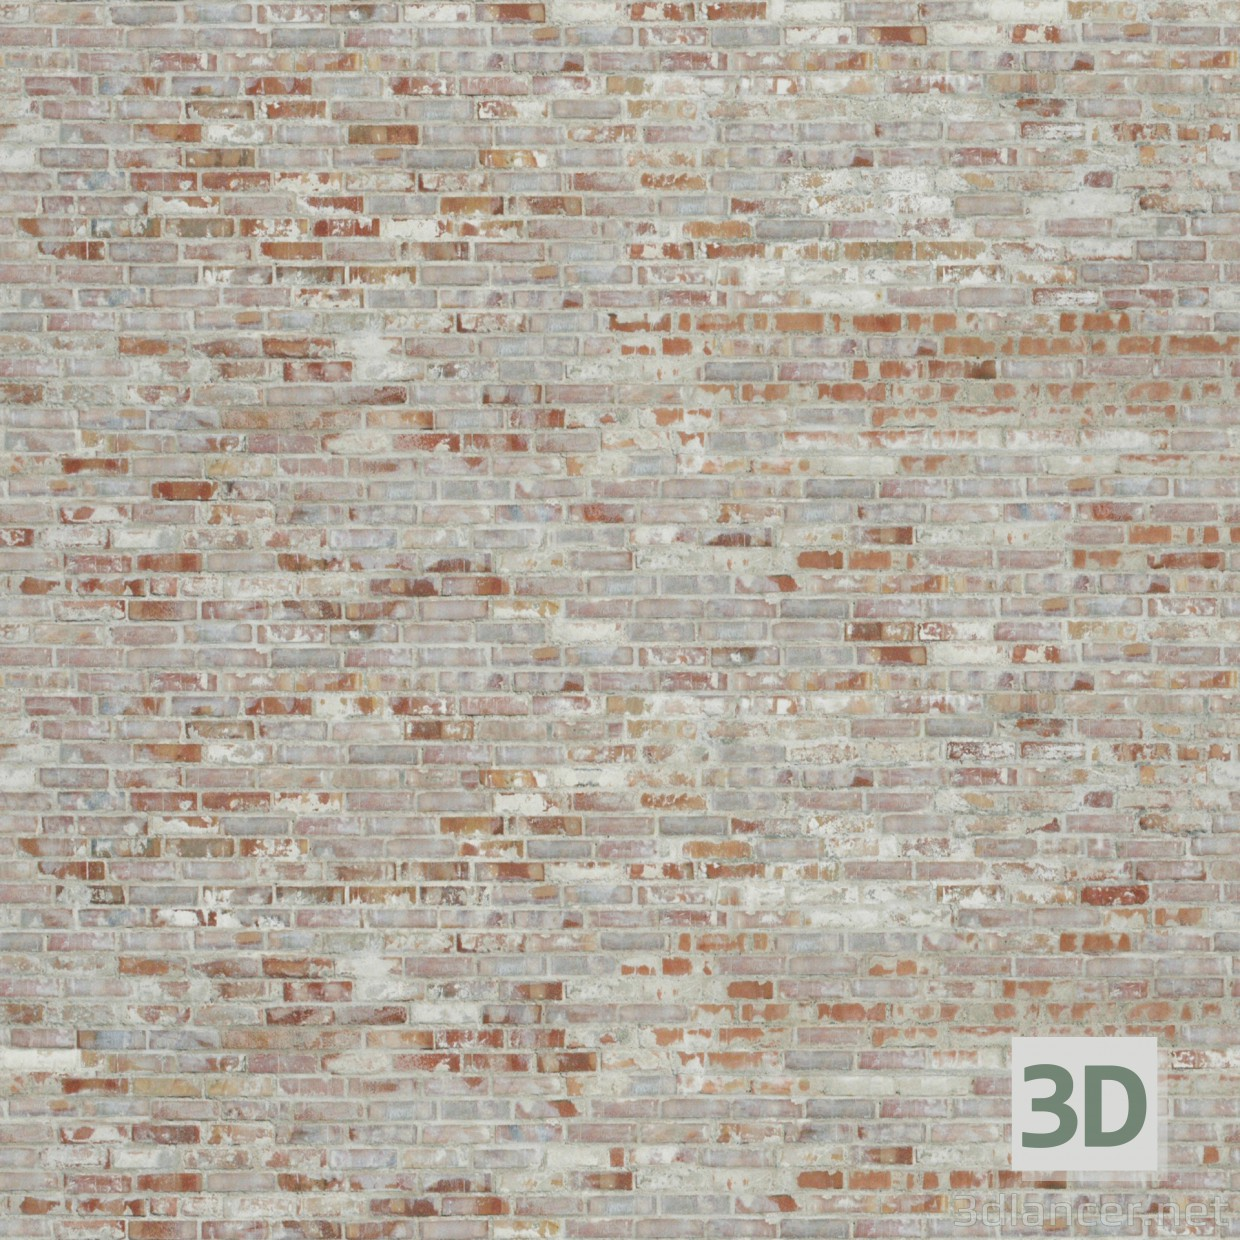 Texture old brick beige free download - image